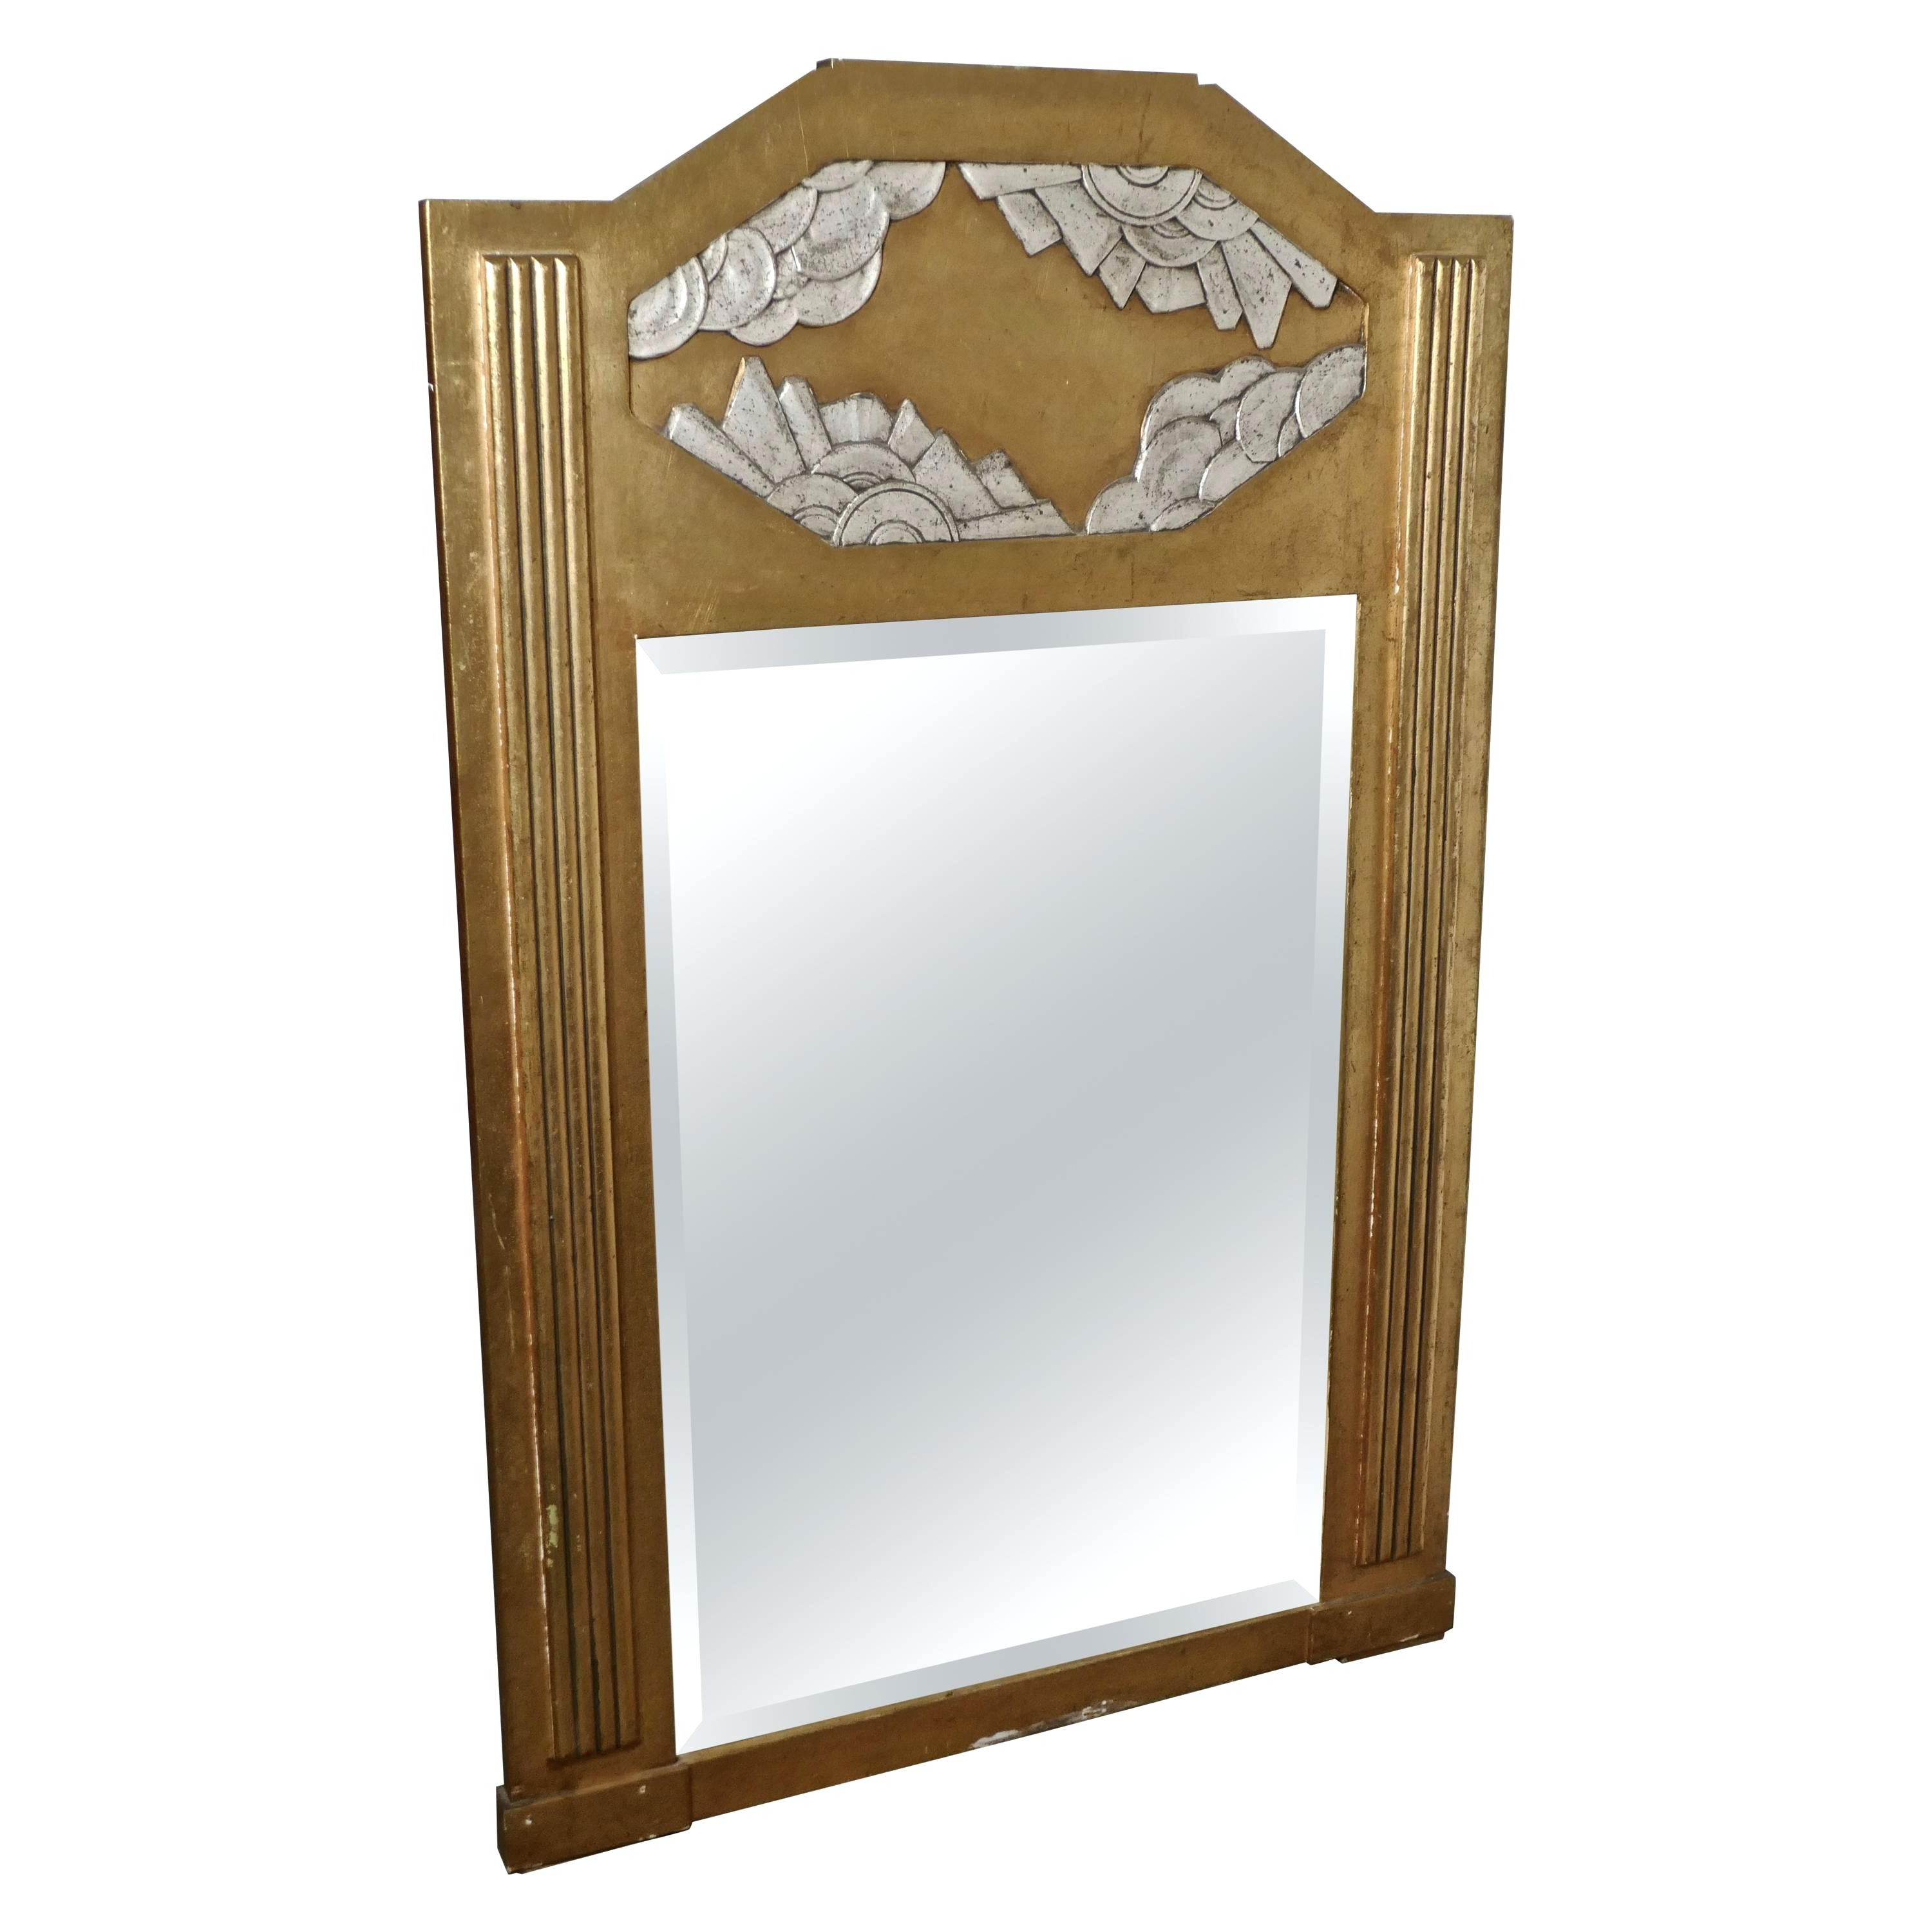 Widely Used Art Deco Wall Mirrors Cheap – Fefisbaby With Large Cheap Wall Mirrors (View 20 of 20)